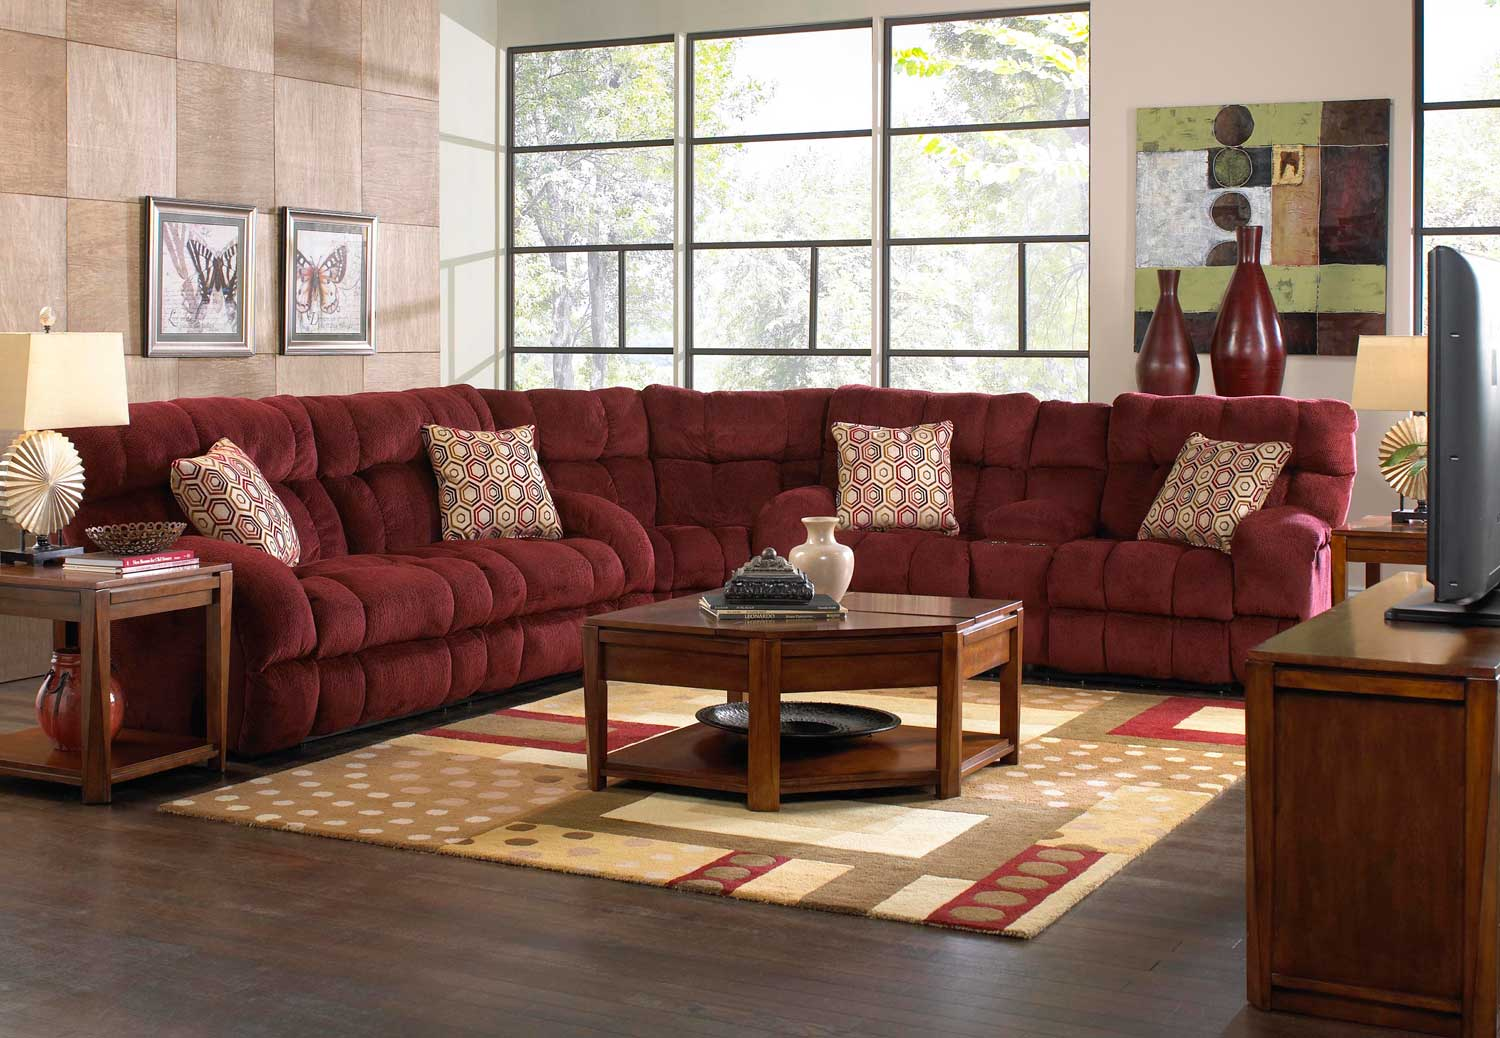 CatNapper Siesta Power Lay Flat Reclining Sectional Sofa Set Wine CN Sect Set Wine p